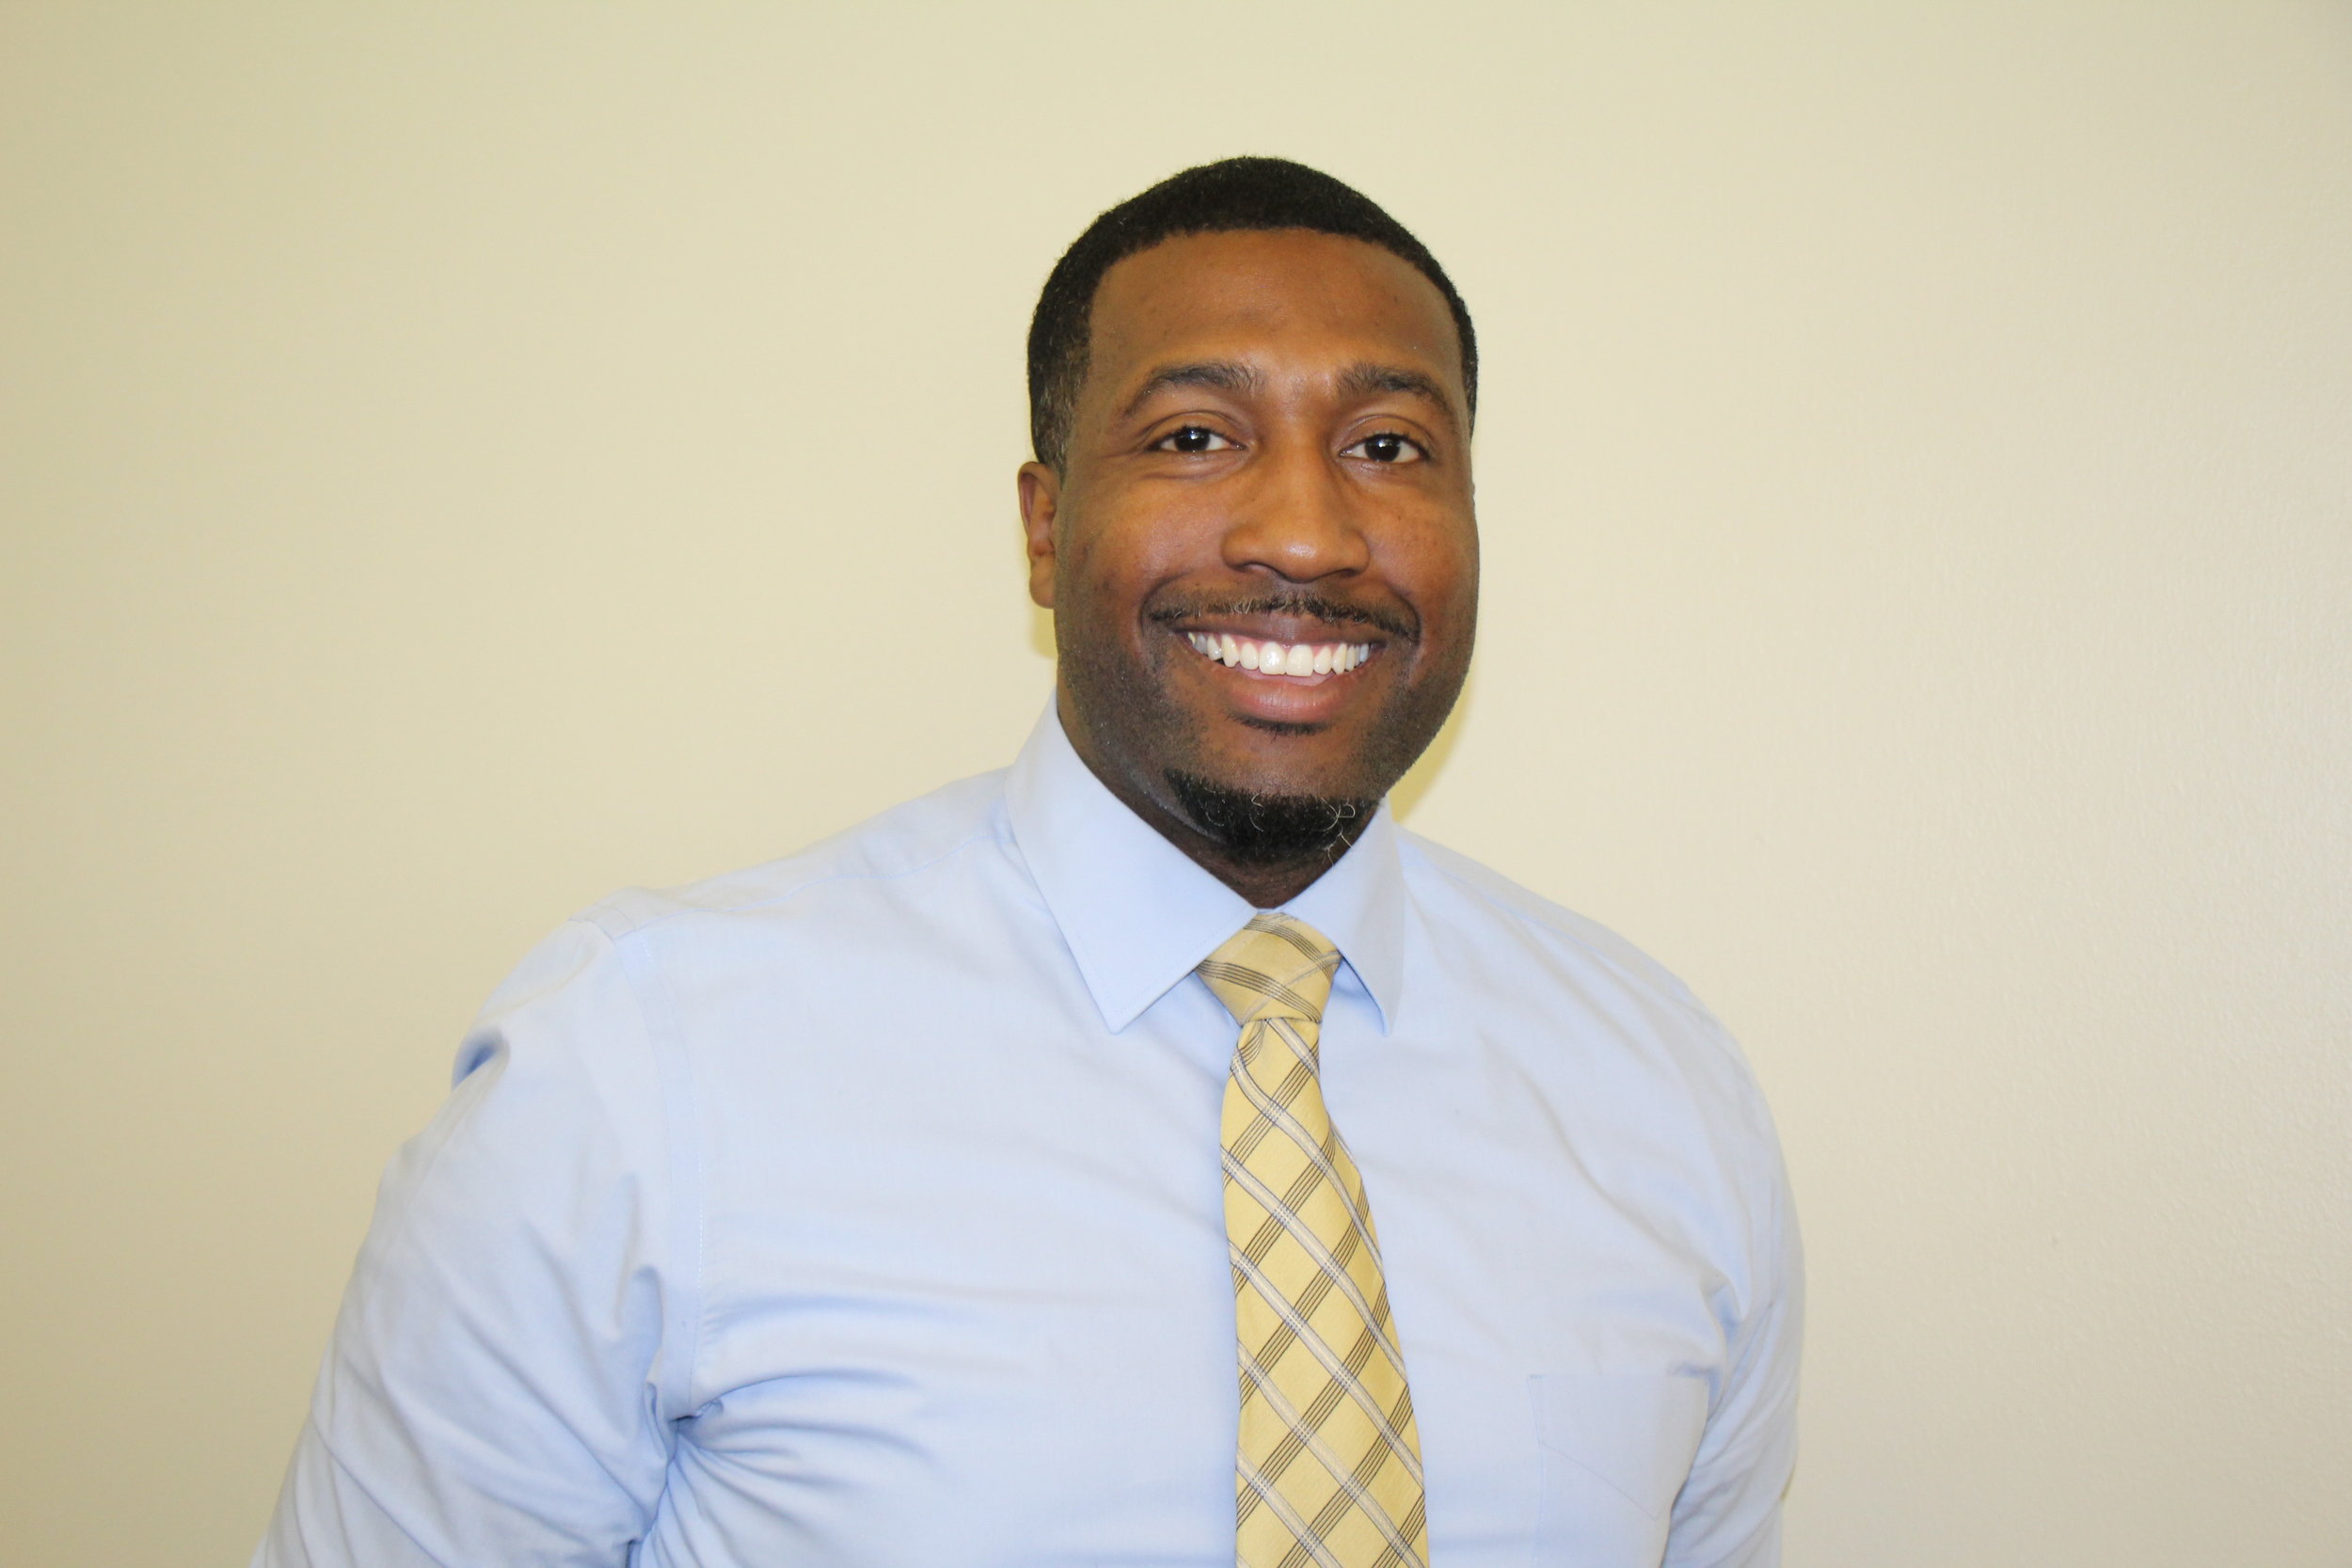 Timothy Hutchins, Business Development Supervisor, Workforce Solutions